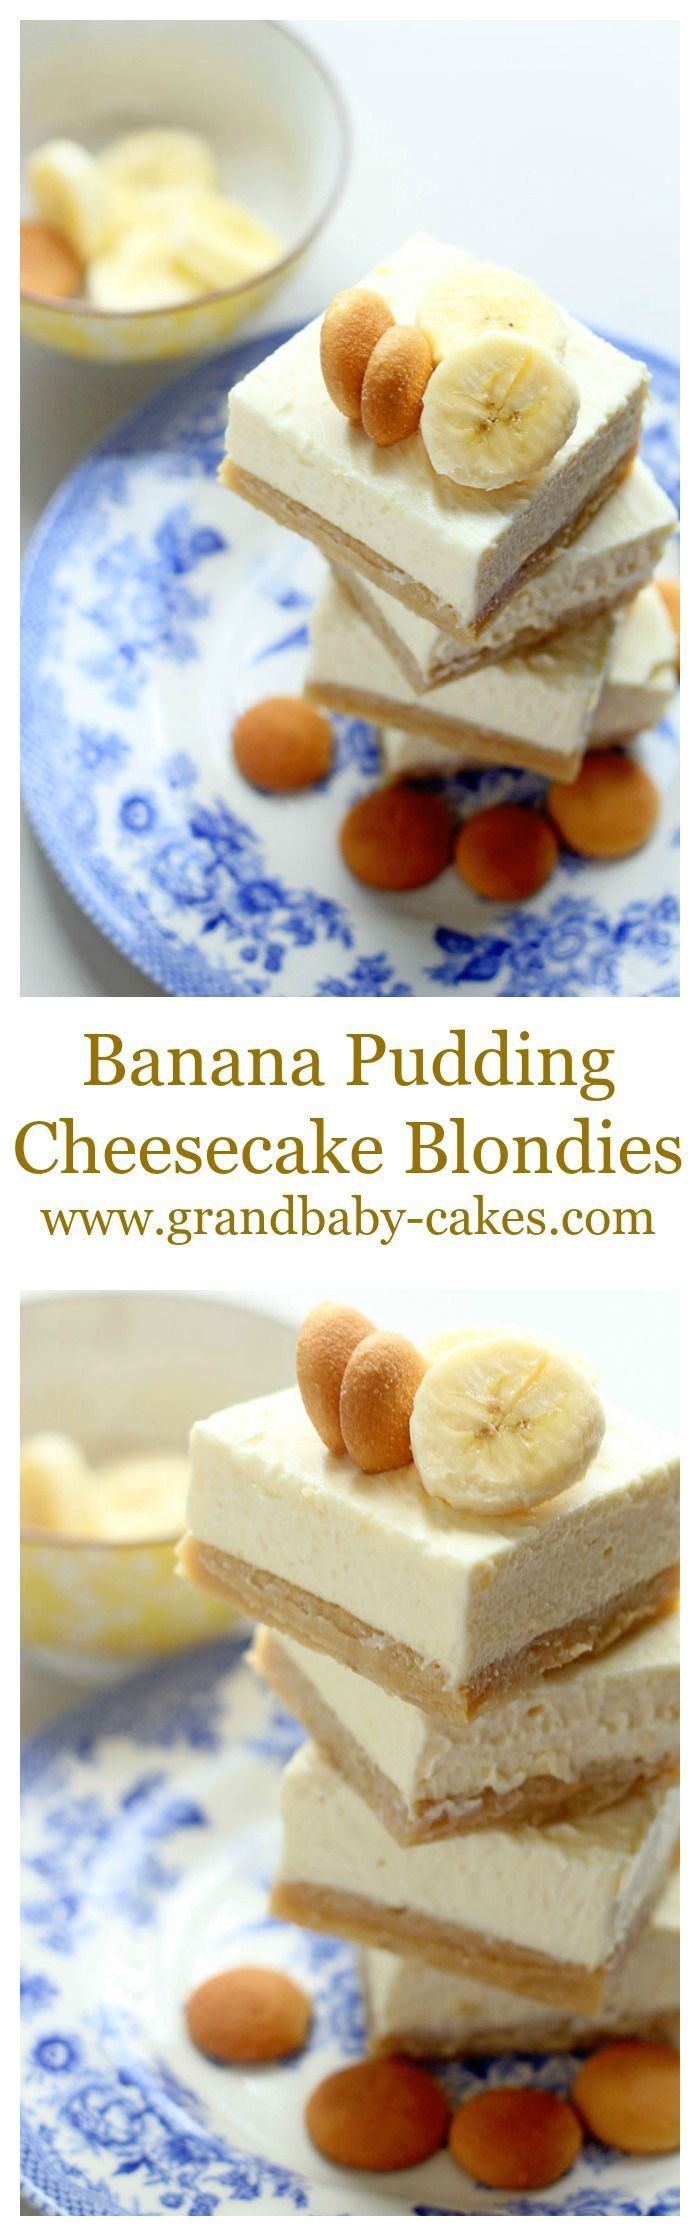 Banana Pudding Cheesecake Blondies and a wonderful GIVEAWAY!! ~ http://www.grandbaby-cakes.com